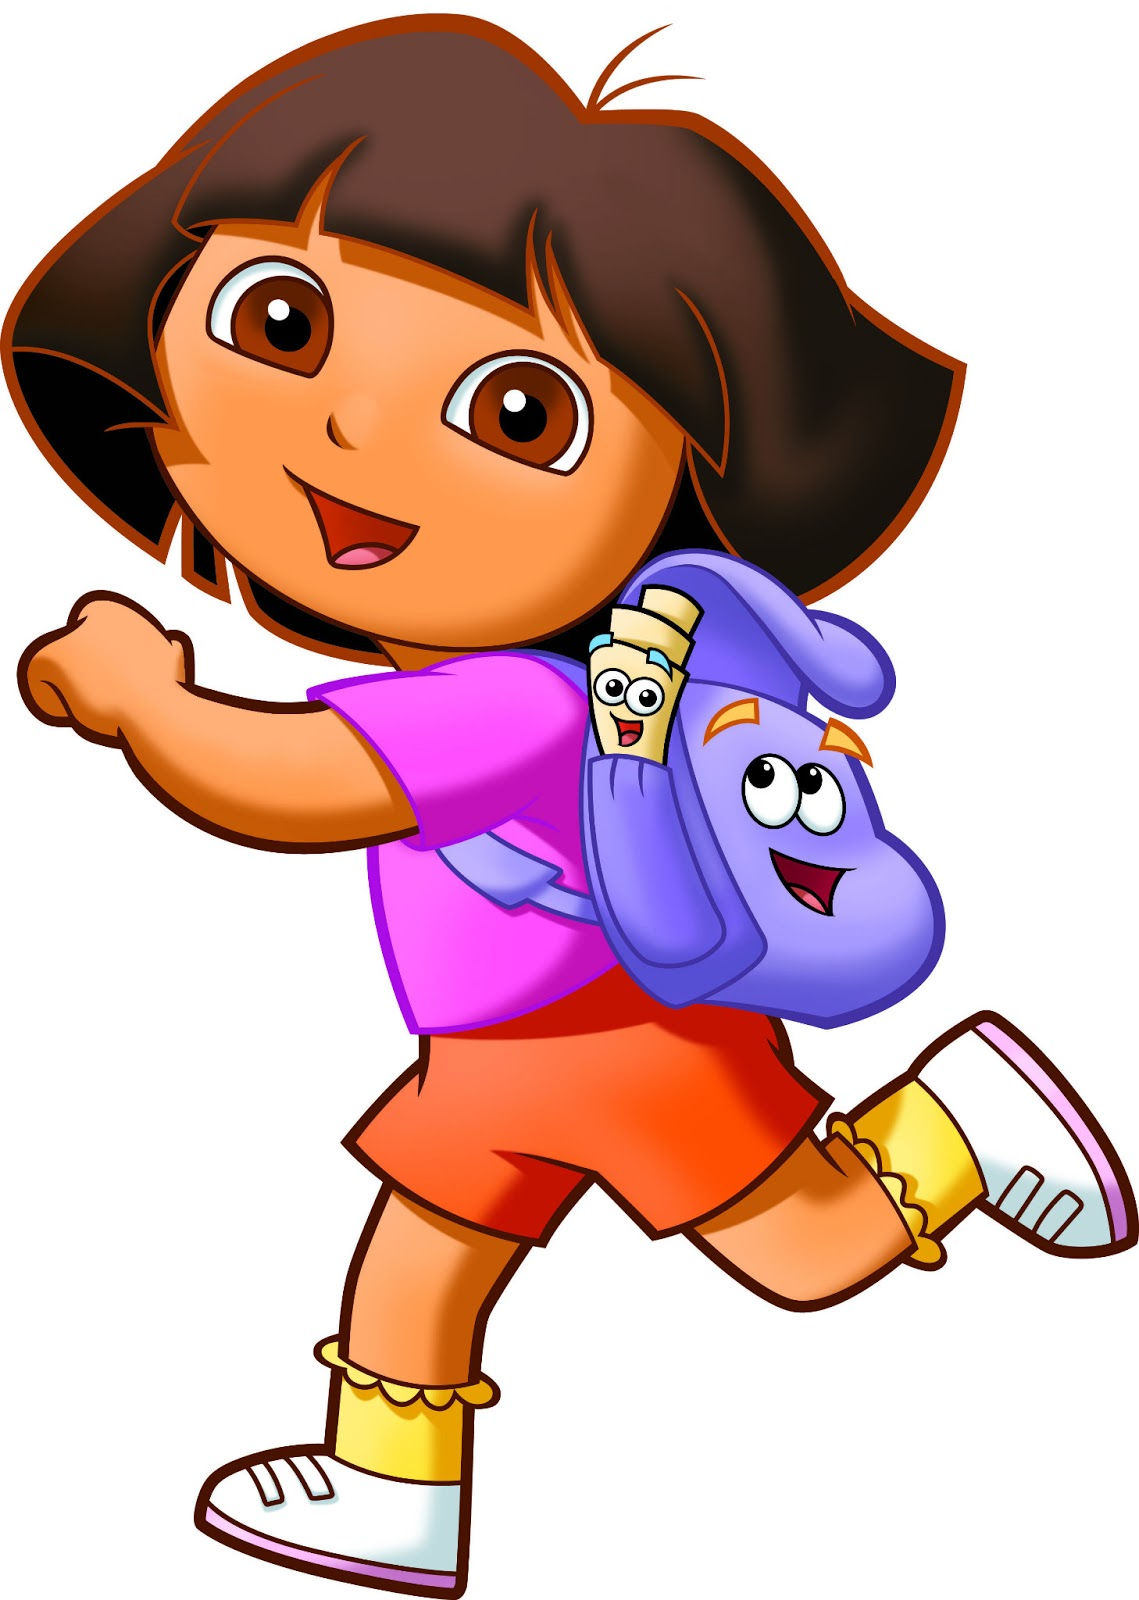 Free Dora Cliparts, Download Free Clip Art, Free Clip Art on Clipart.